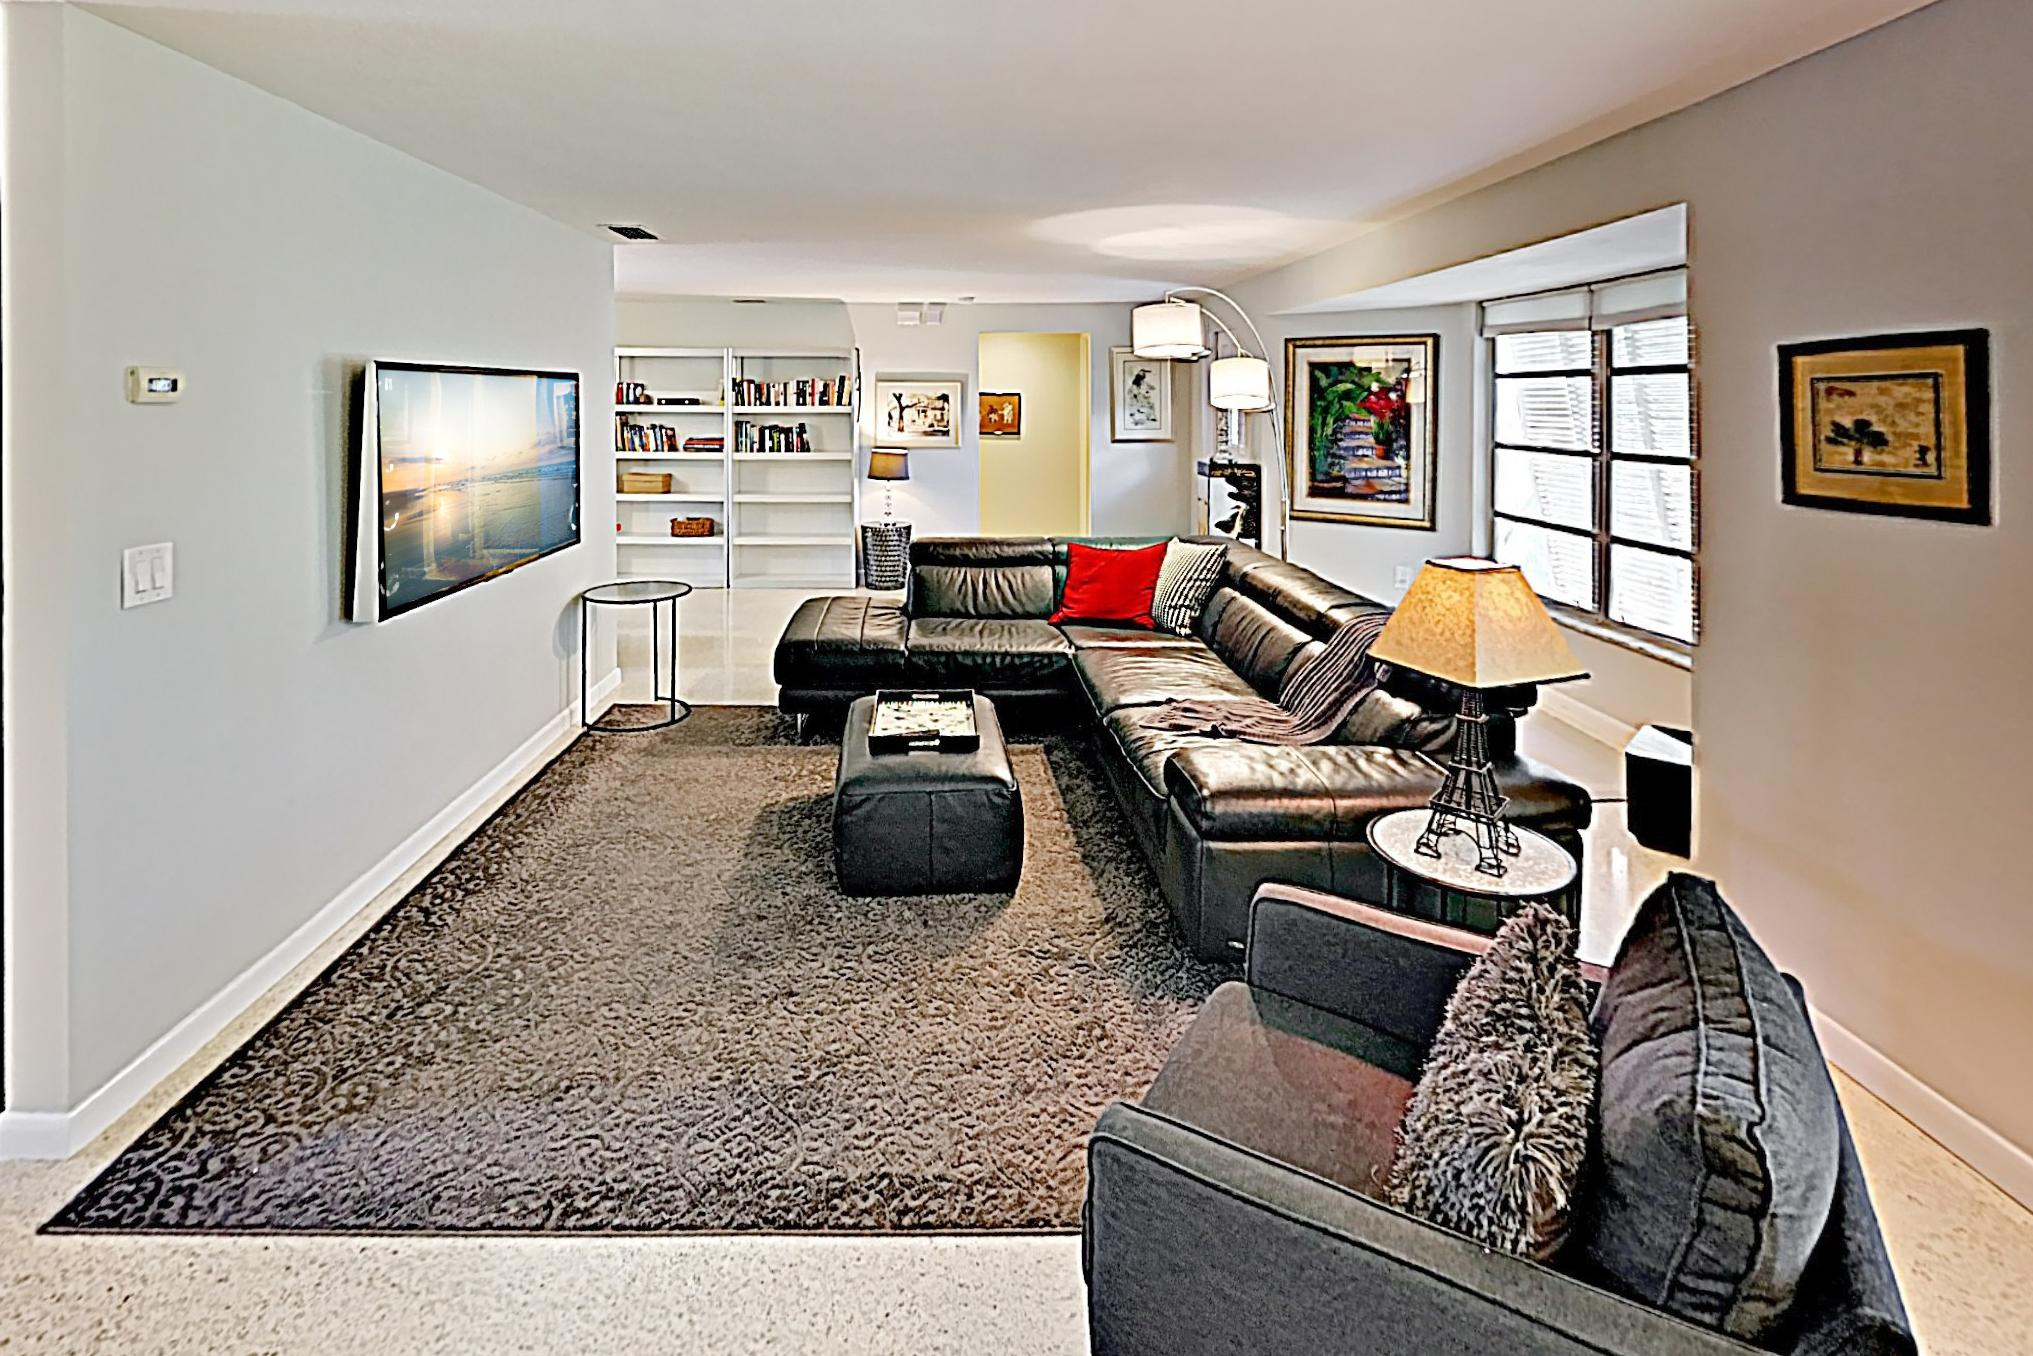 Kick back and relax on the leather sectional in the living room.